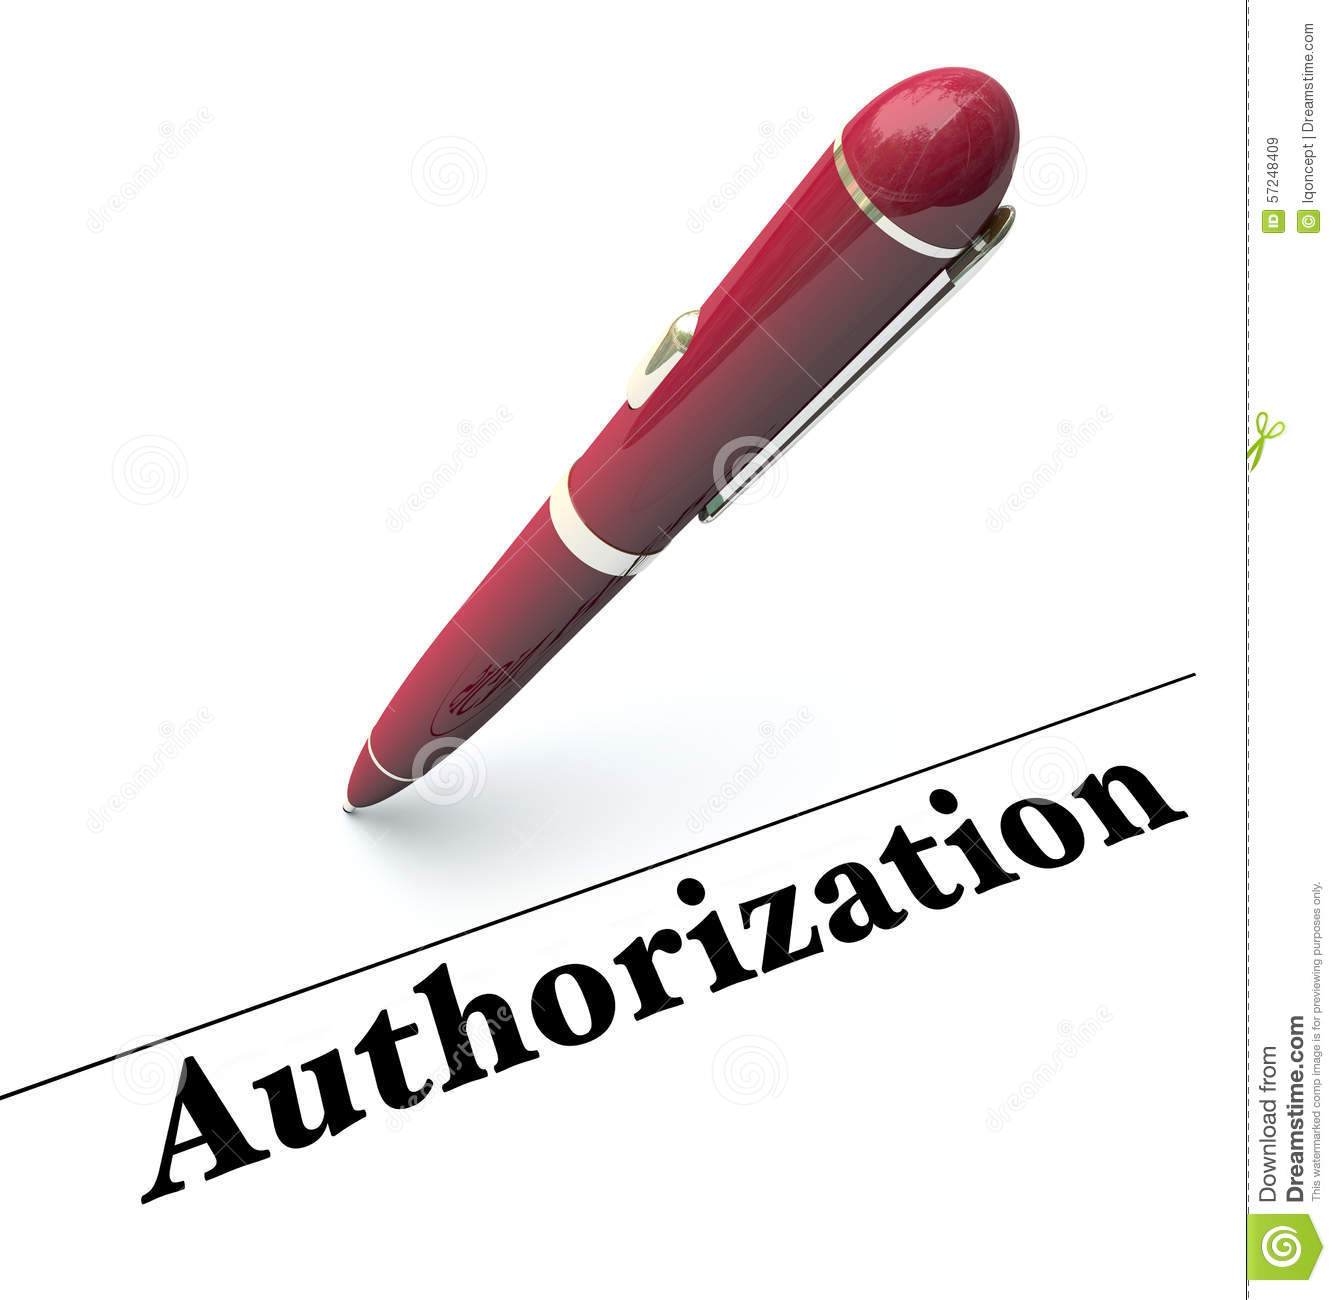 Authority Cartoons, Illustrations & Vector Stock Images ...